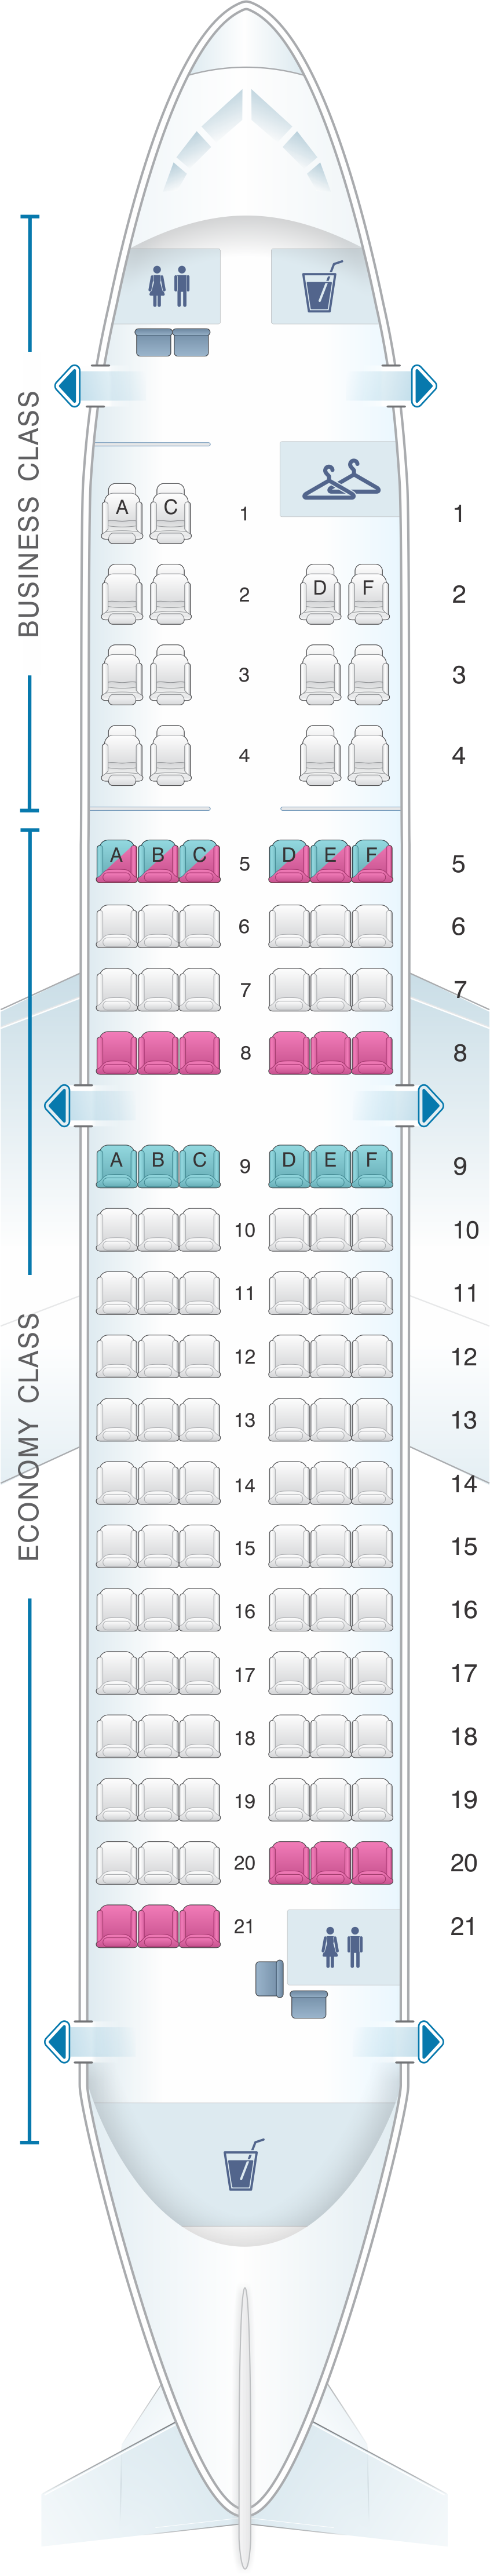 Seat map for TAROM Airbus A318 111 113pax